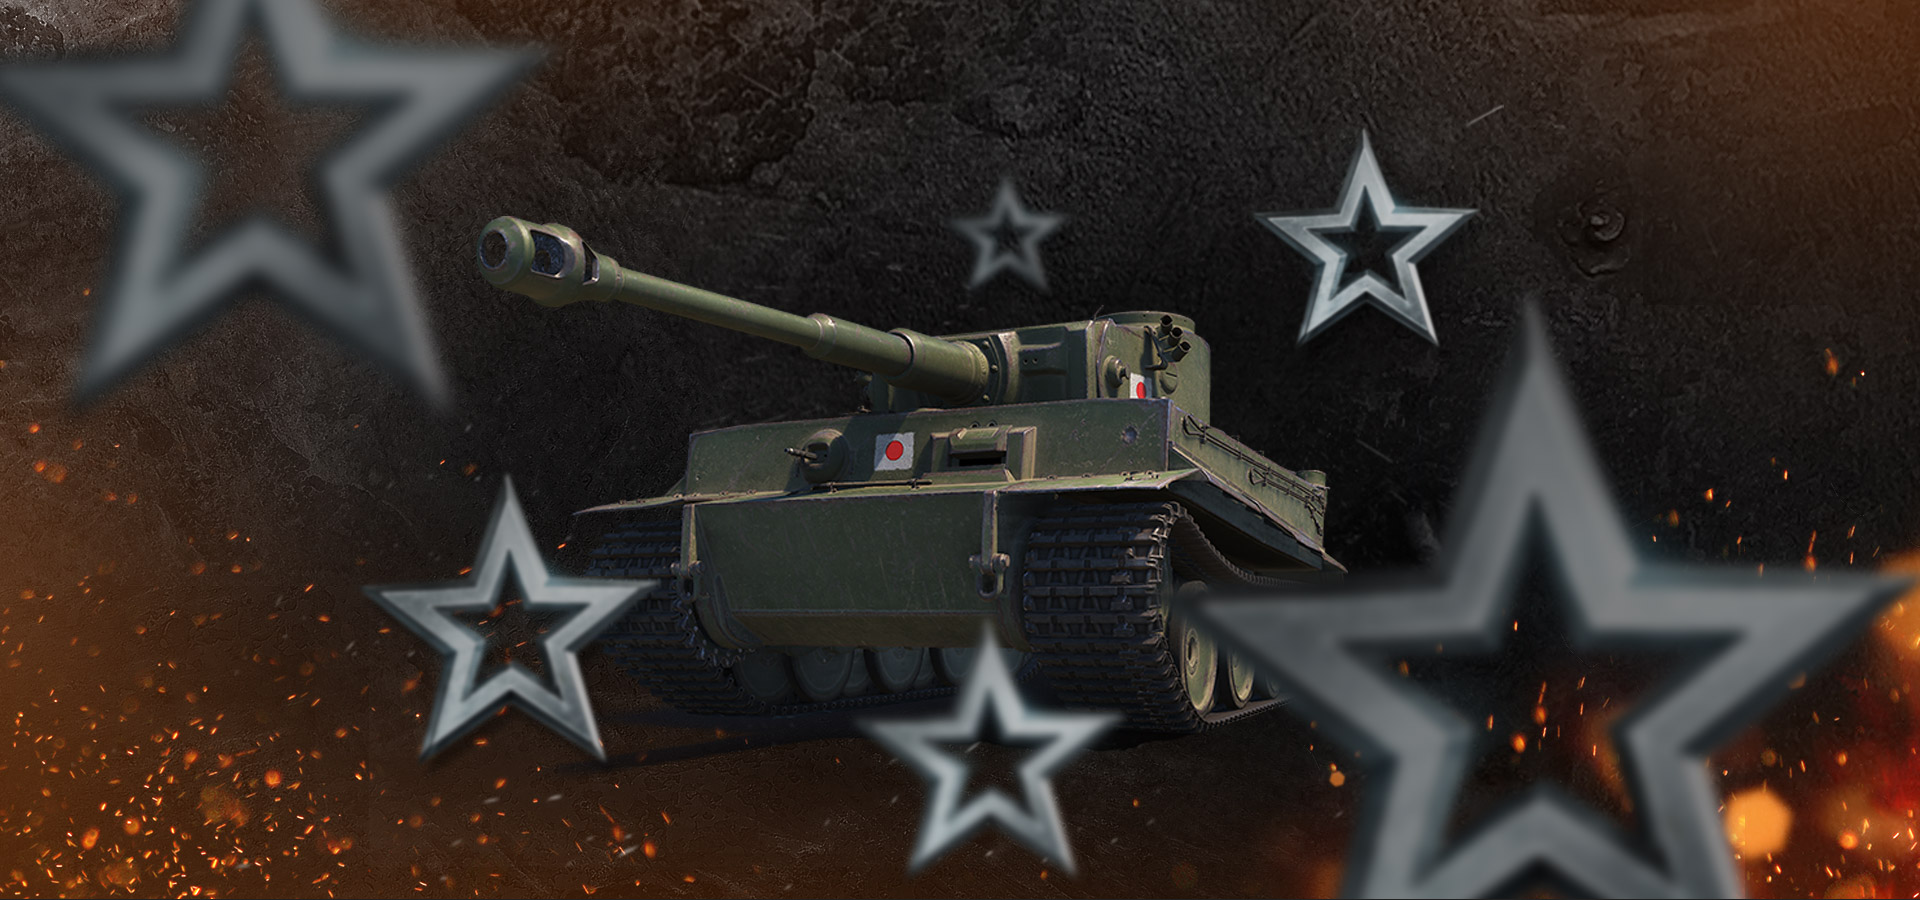 wot_banners_experiencechallenge_banner_1920x900_phil